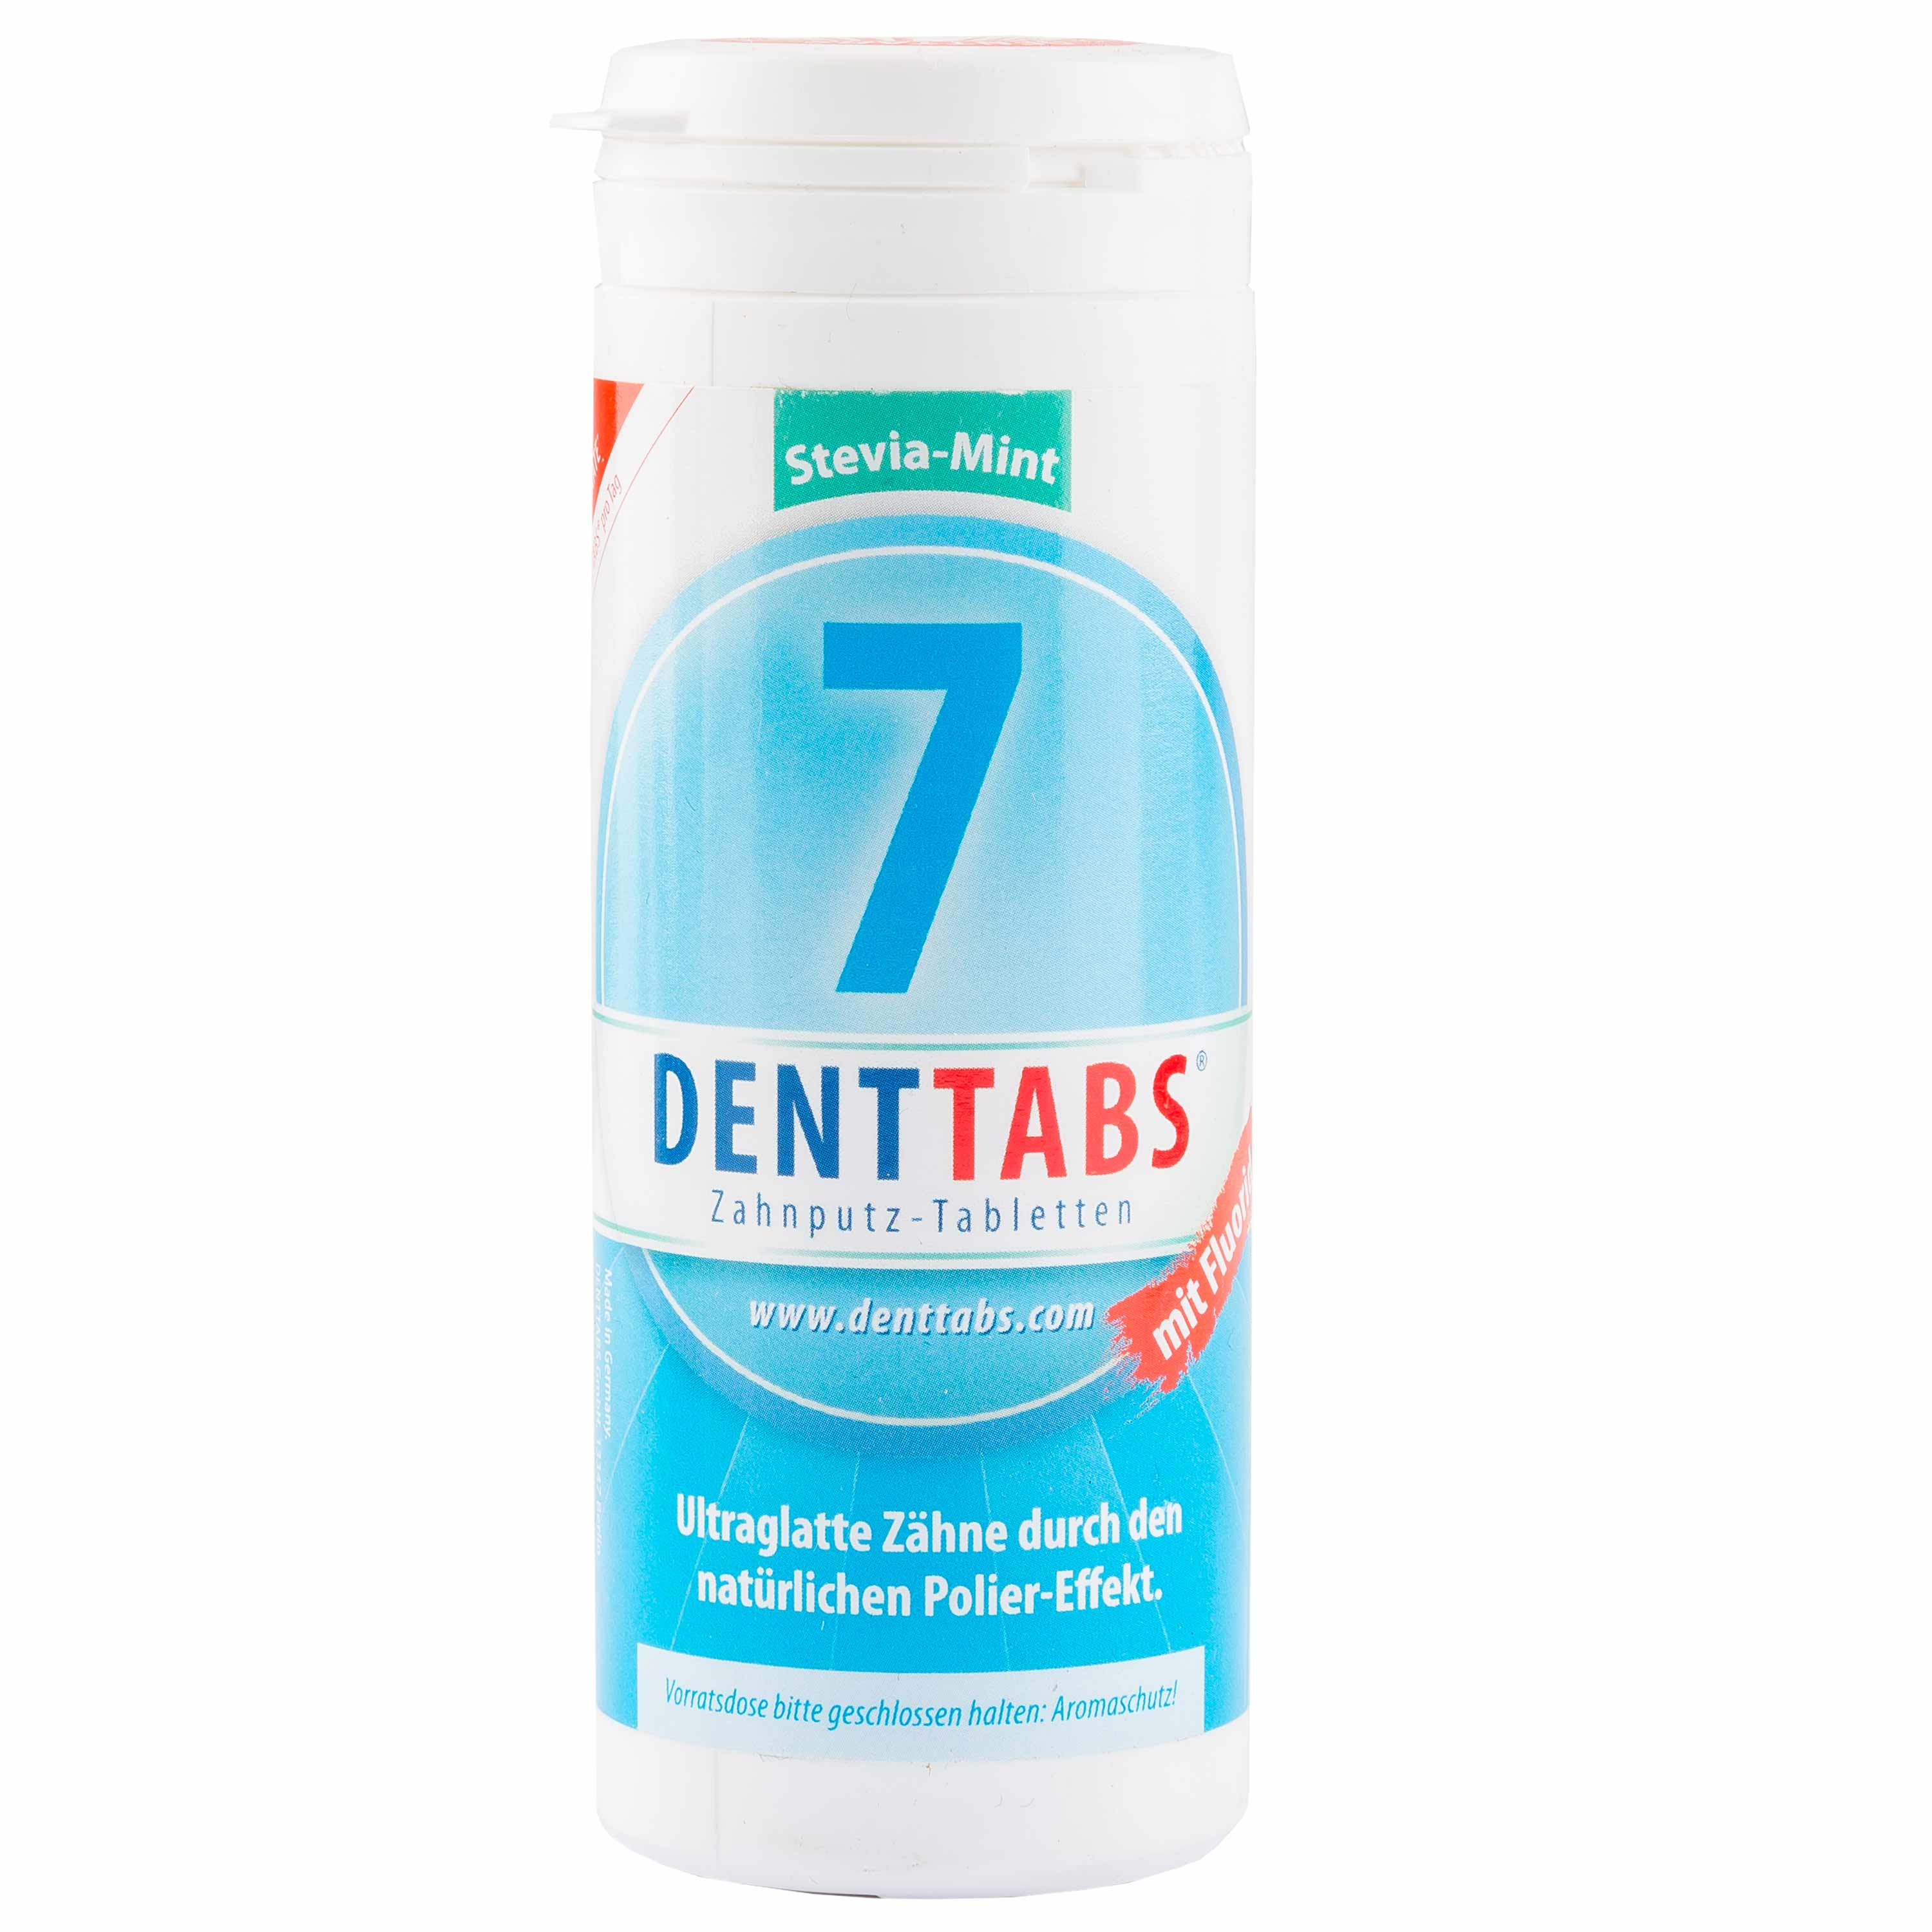 DENTTABS Tooth Cleaning Tablets Stevia-Mint Fluoride 380 Tablets